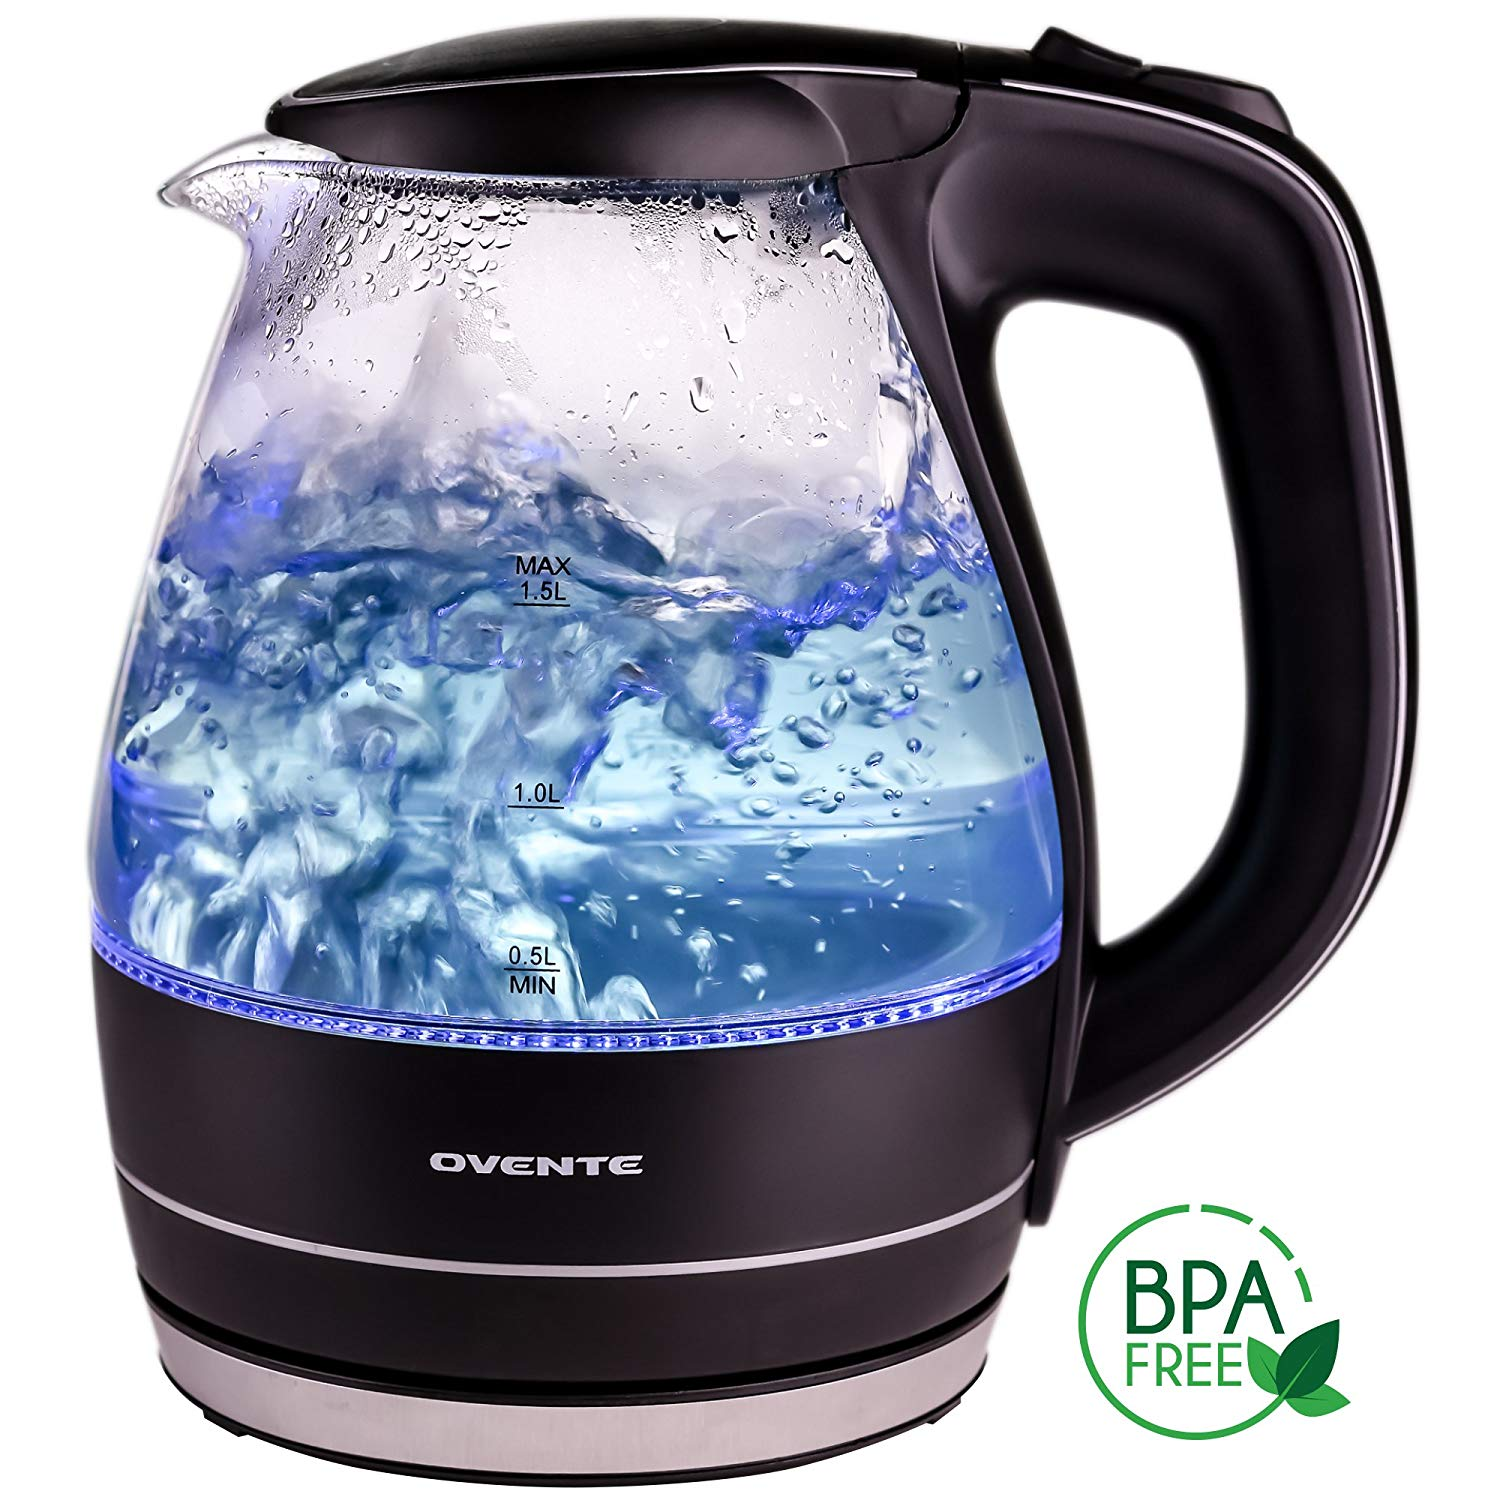 Ovente 1.5L BPA-Free Glass Electric Kettle,